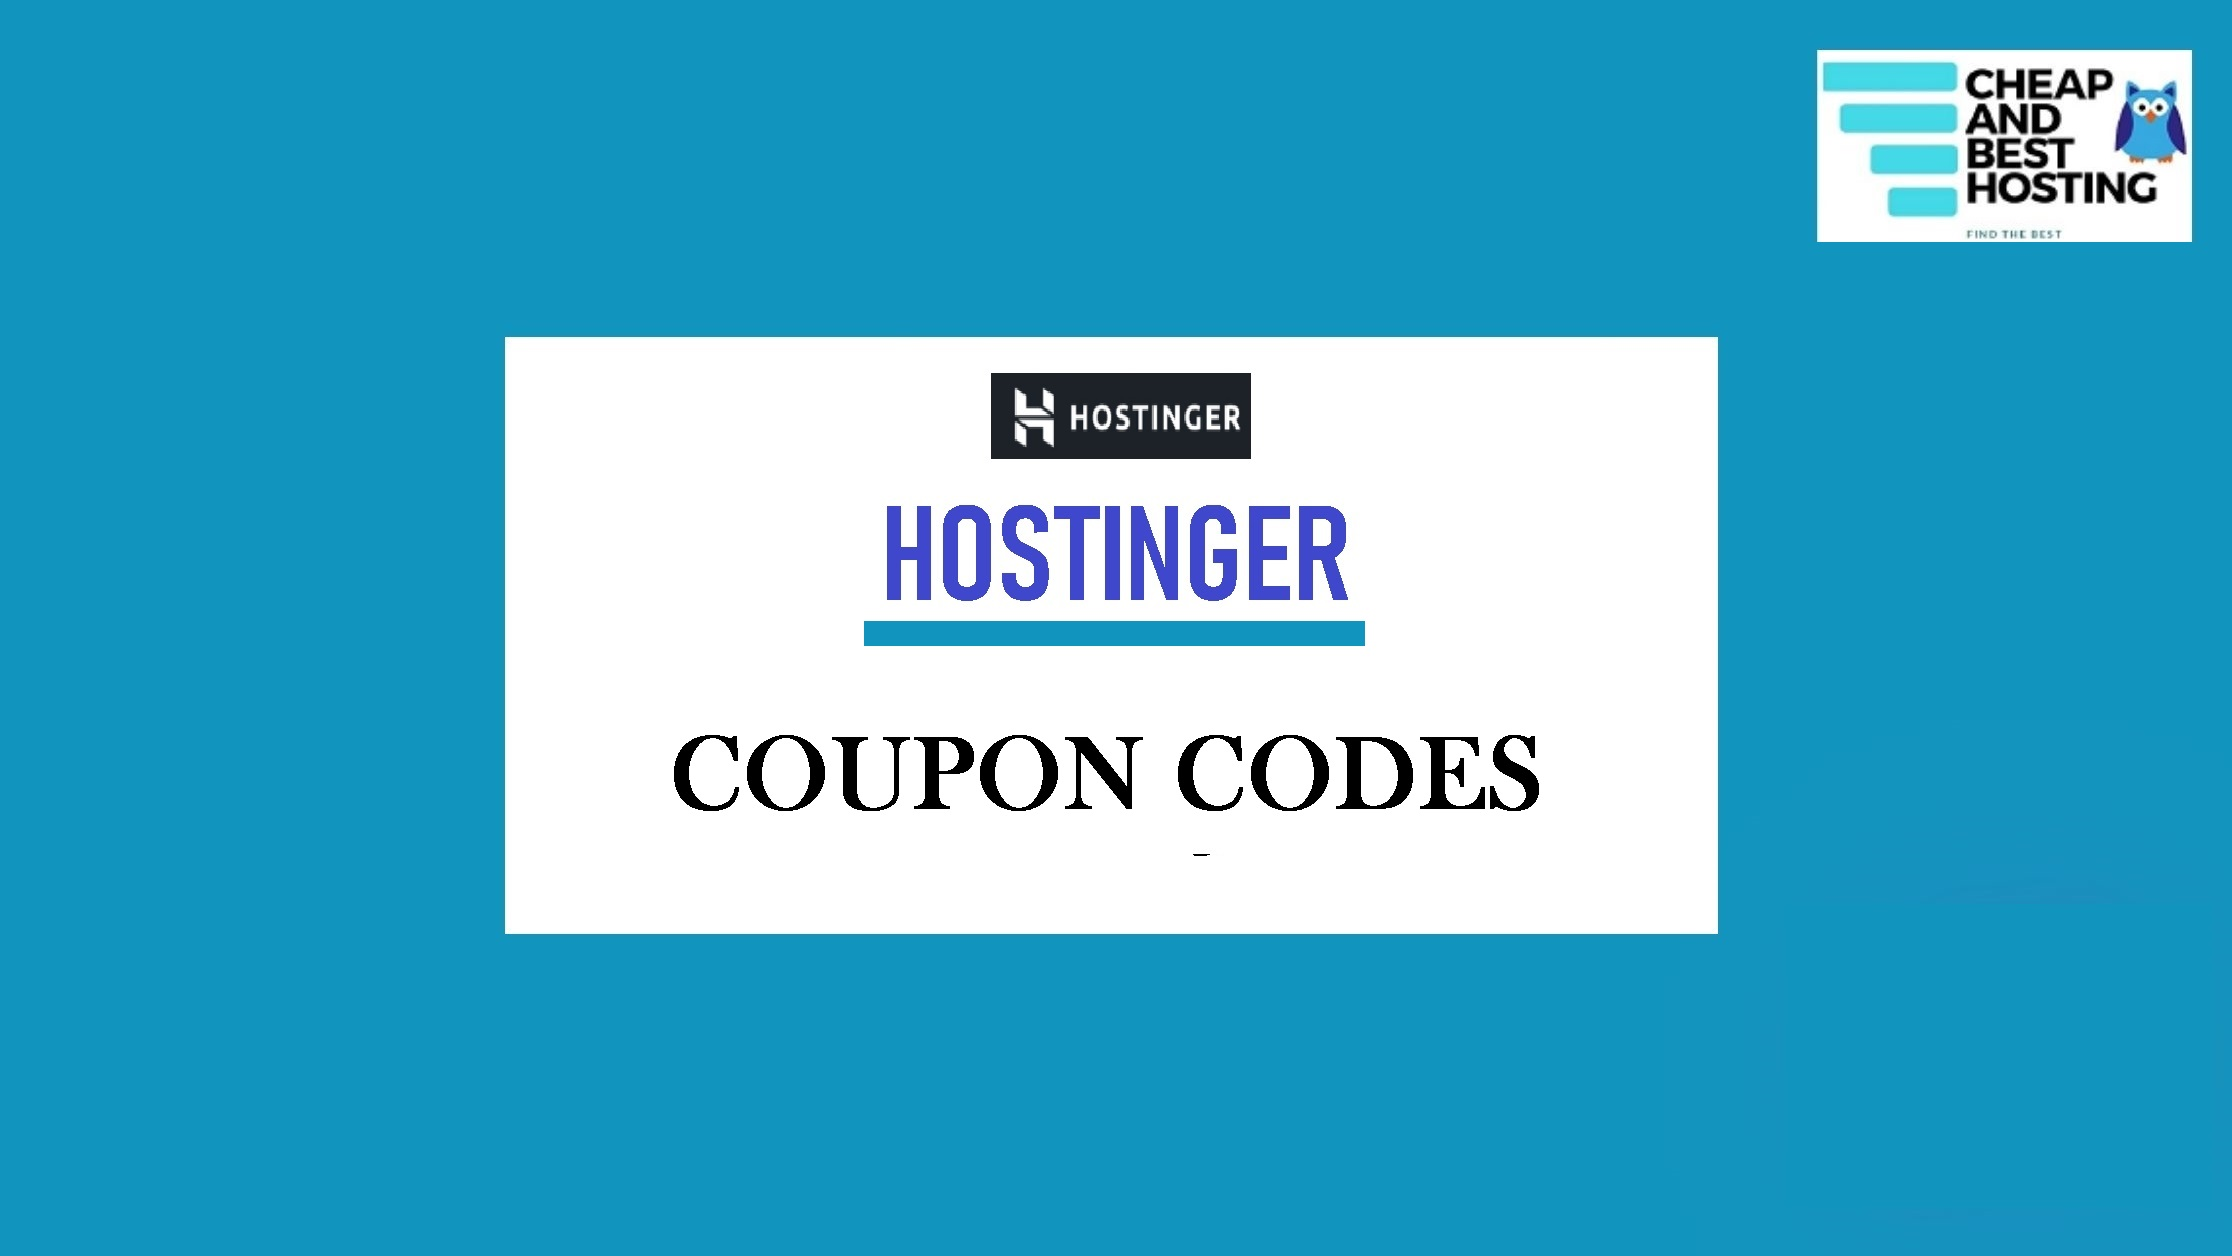 HOSTINGER COUPON, HOSTINGER COUPON CODES, HOSTINGER PROMOTIONAL OFFERS AND PROMO CODES